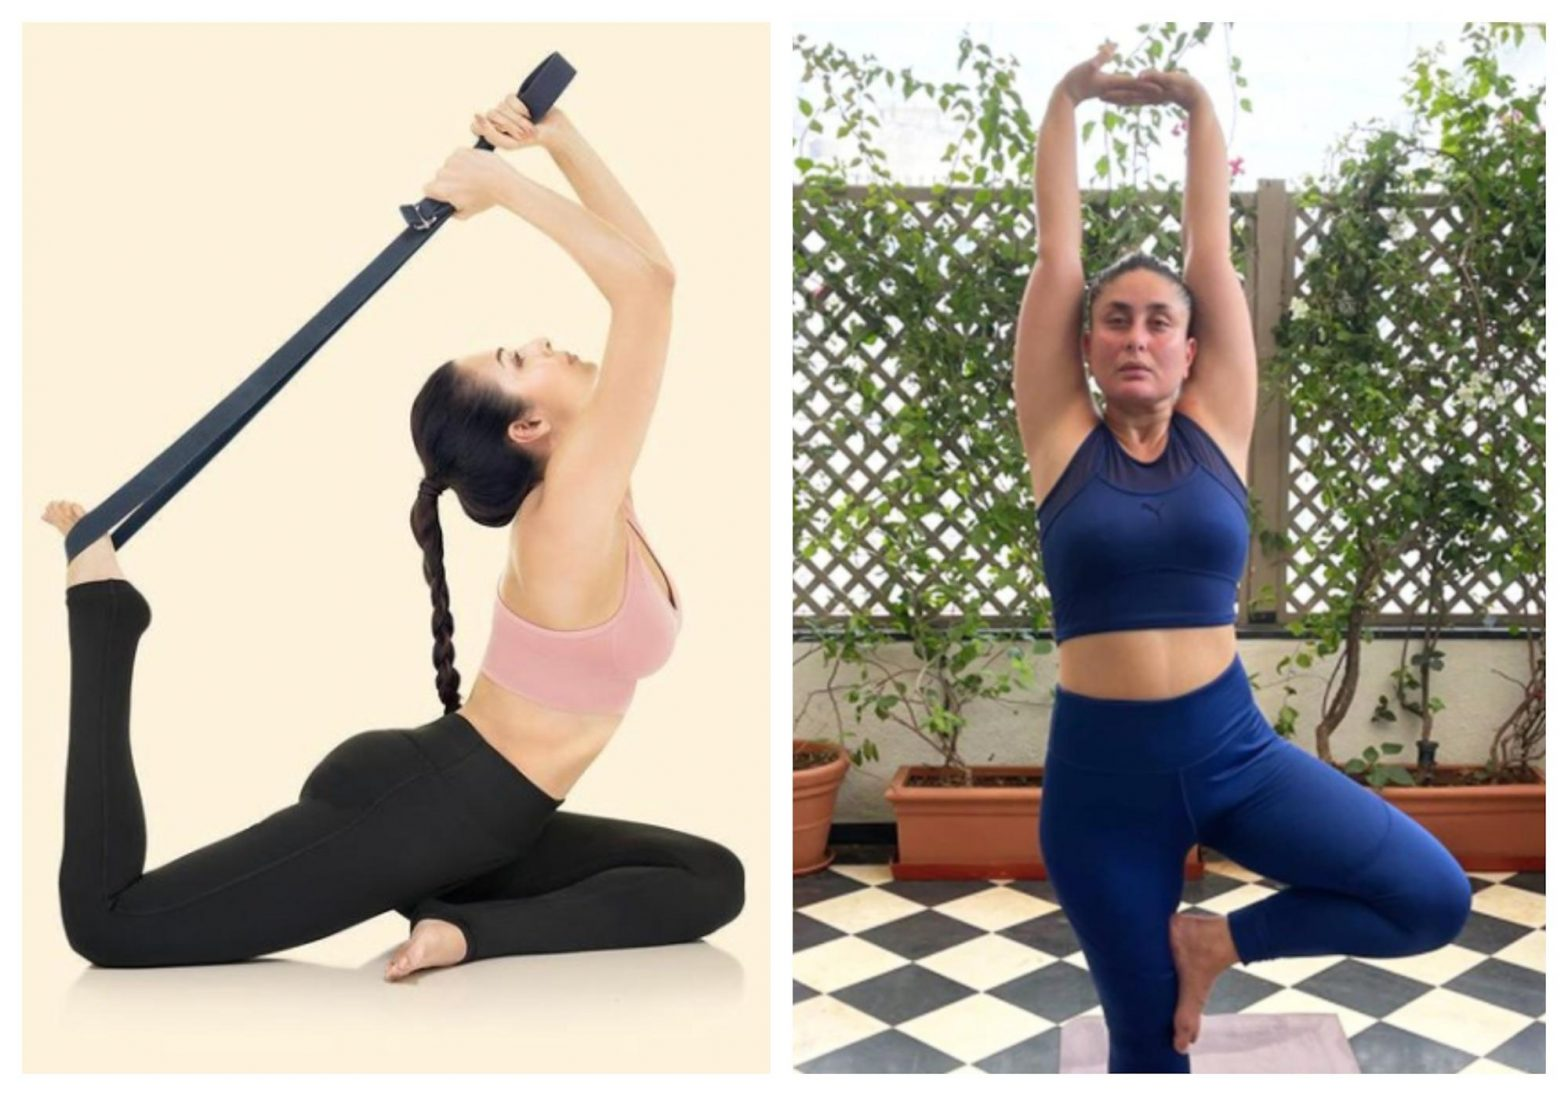 bollywood-celebrities-who-adopted-yoga-as-a-way-of-life